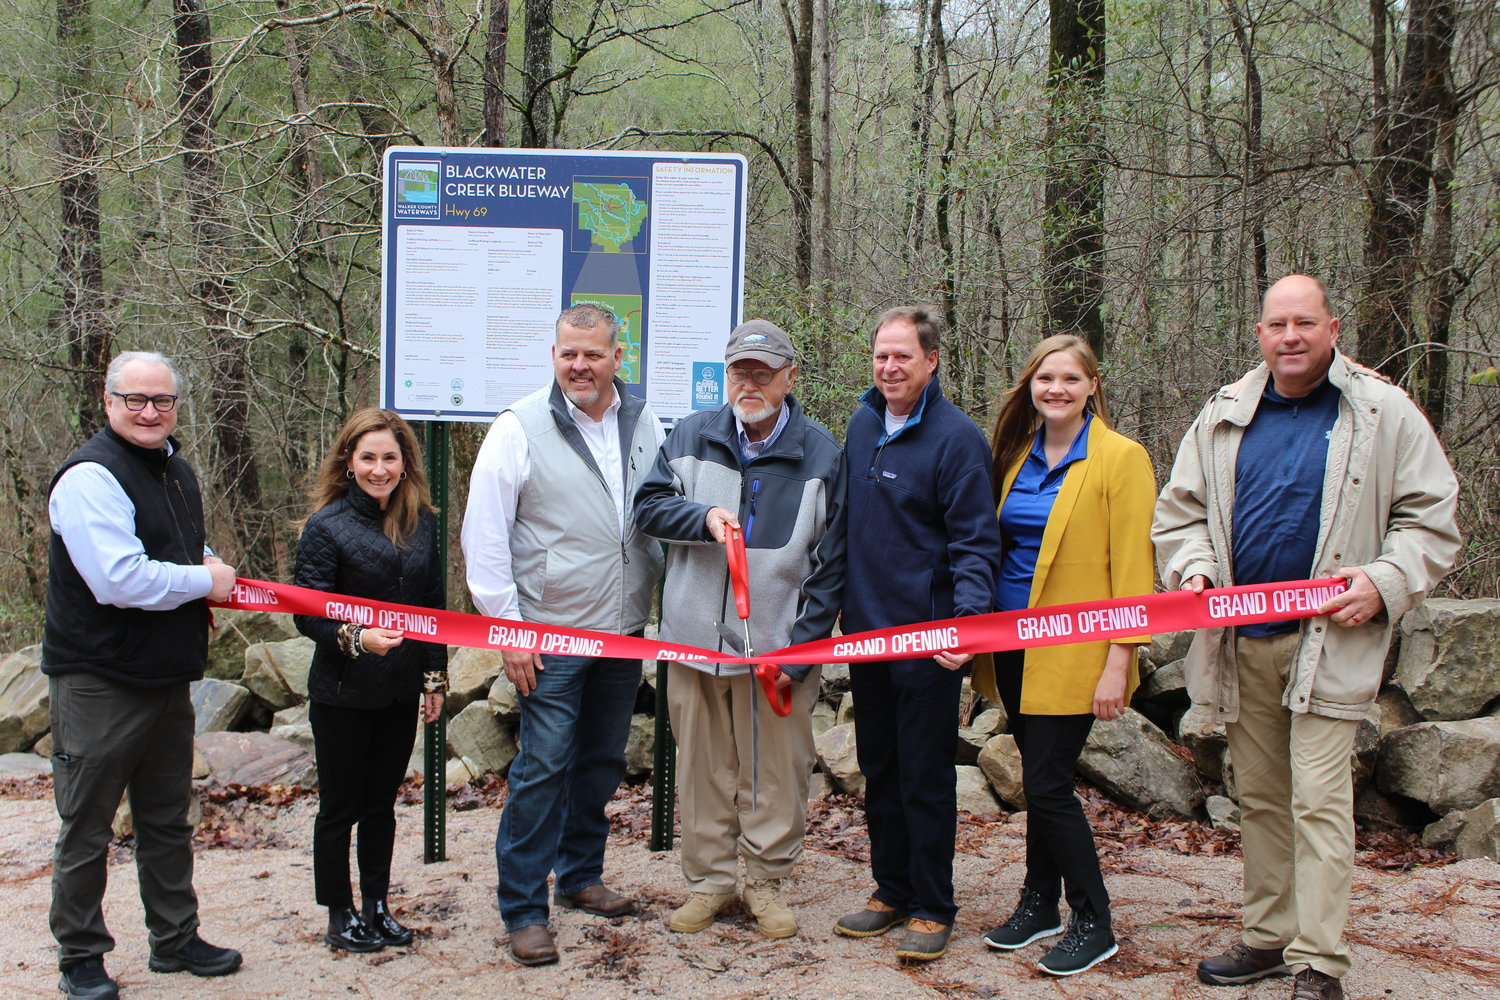 A number of officials celebrated the opening of the Highway 69 Blackwater Creek access point on Thursday. They included, from left, Paul Kennedy, Jenny Short, Steven Aderholt, Jerry Bishop, Mike Short, Elyse Peters and Jeff Burrough